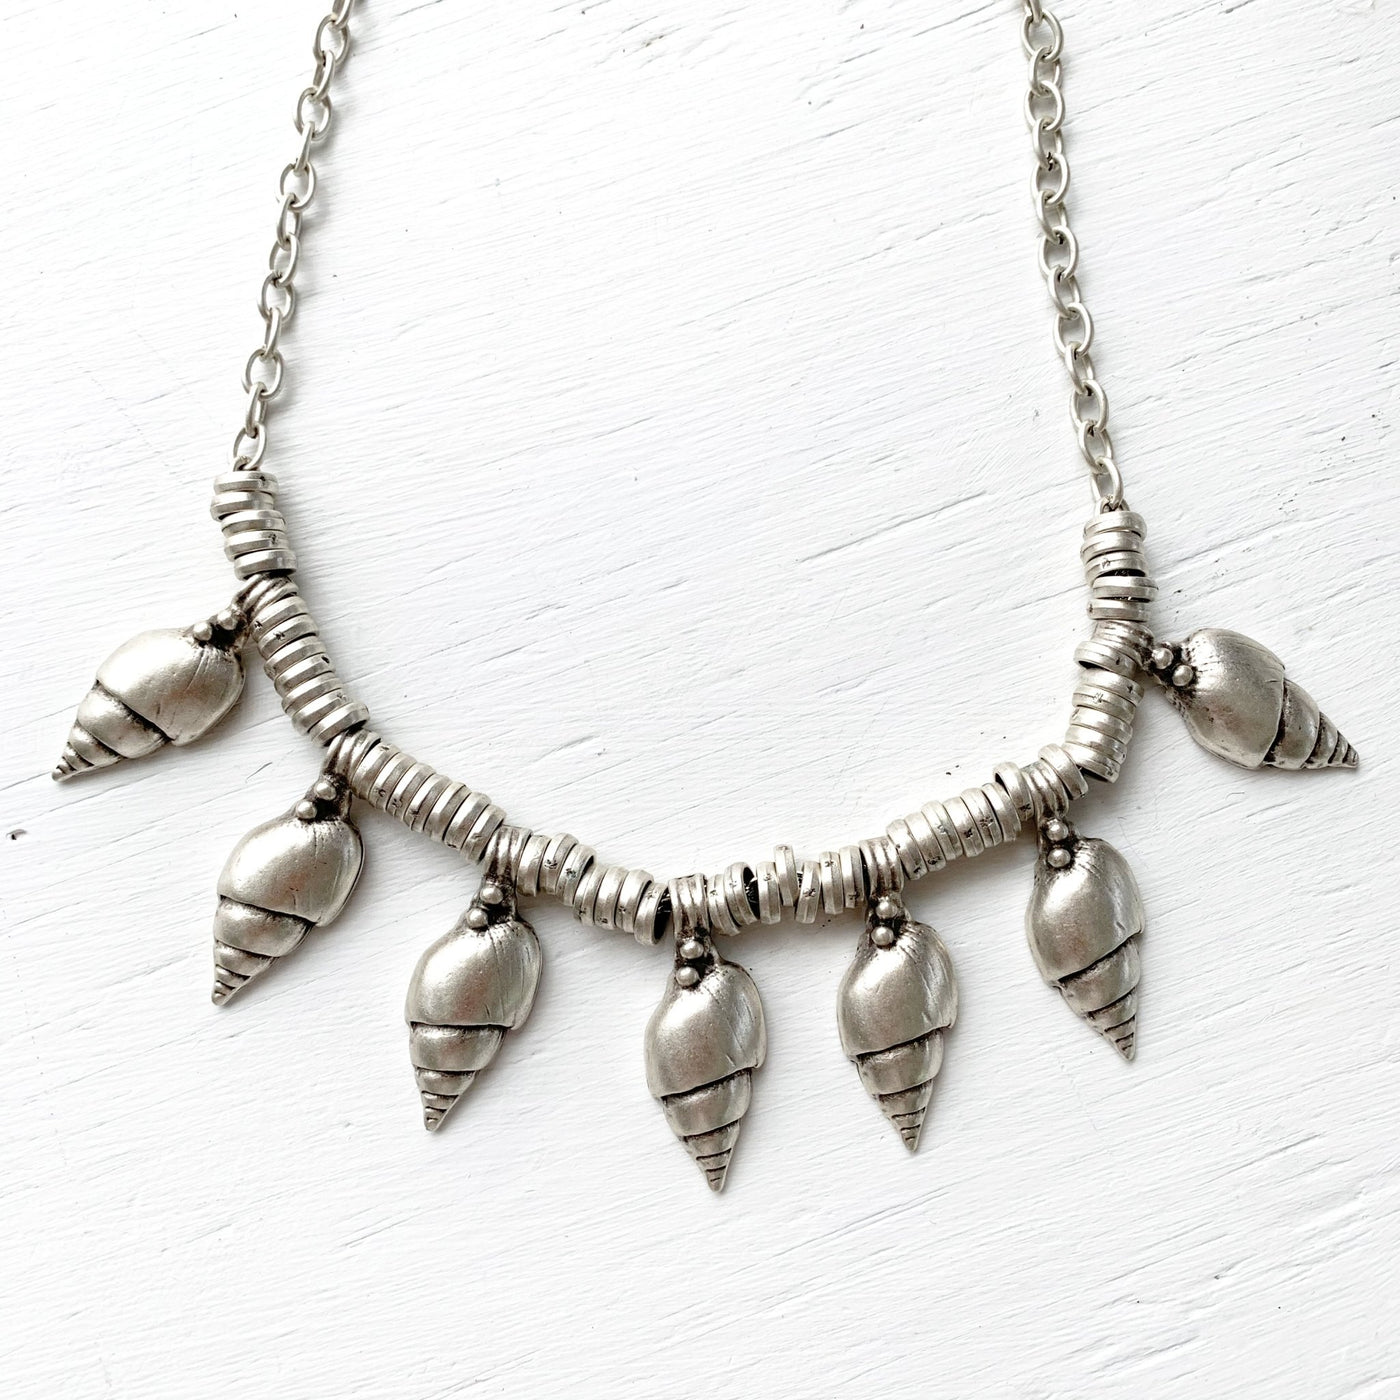 Siren necklace - Celeste Twikler